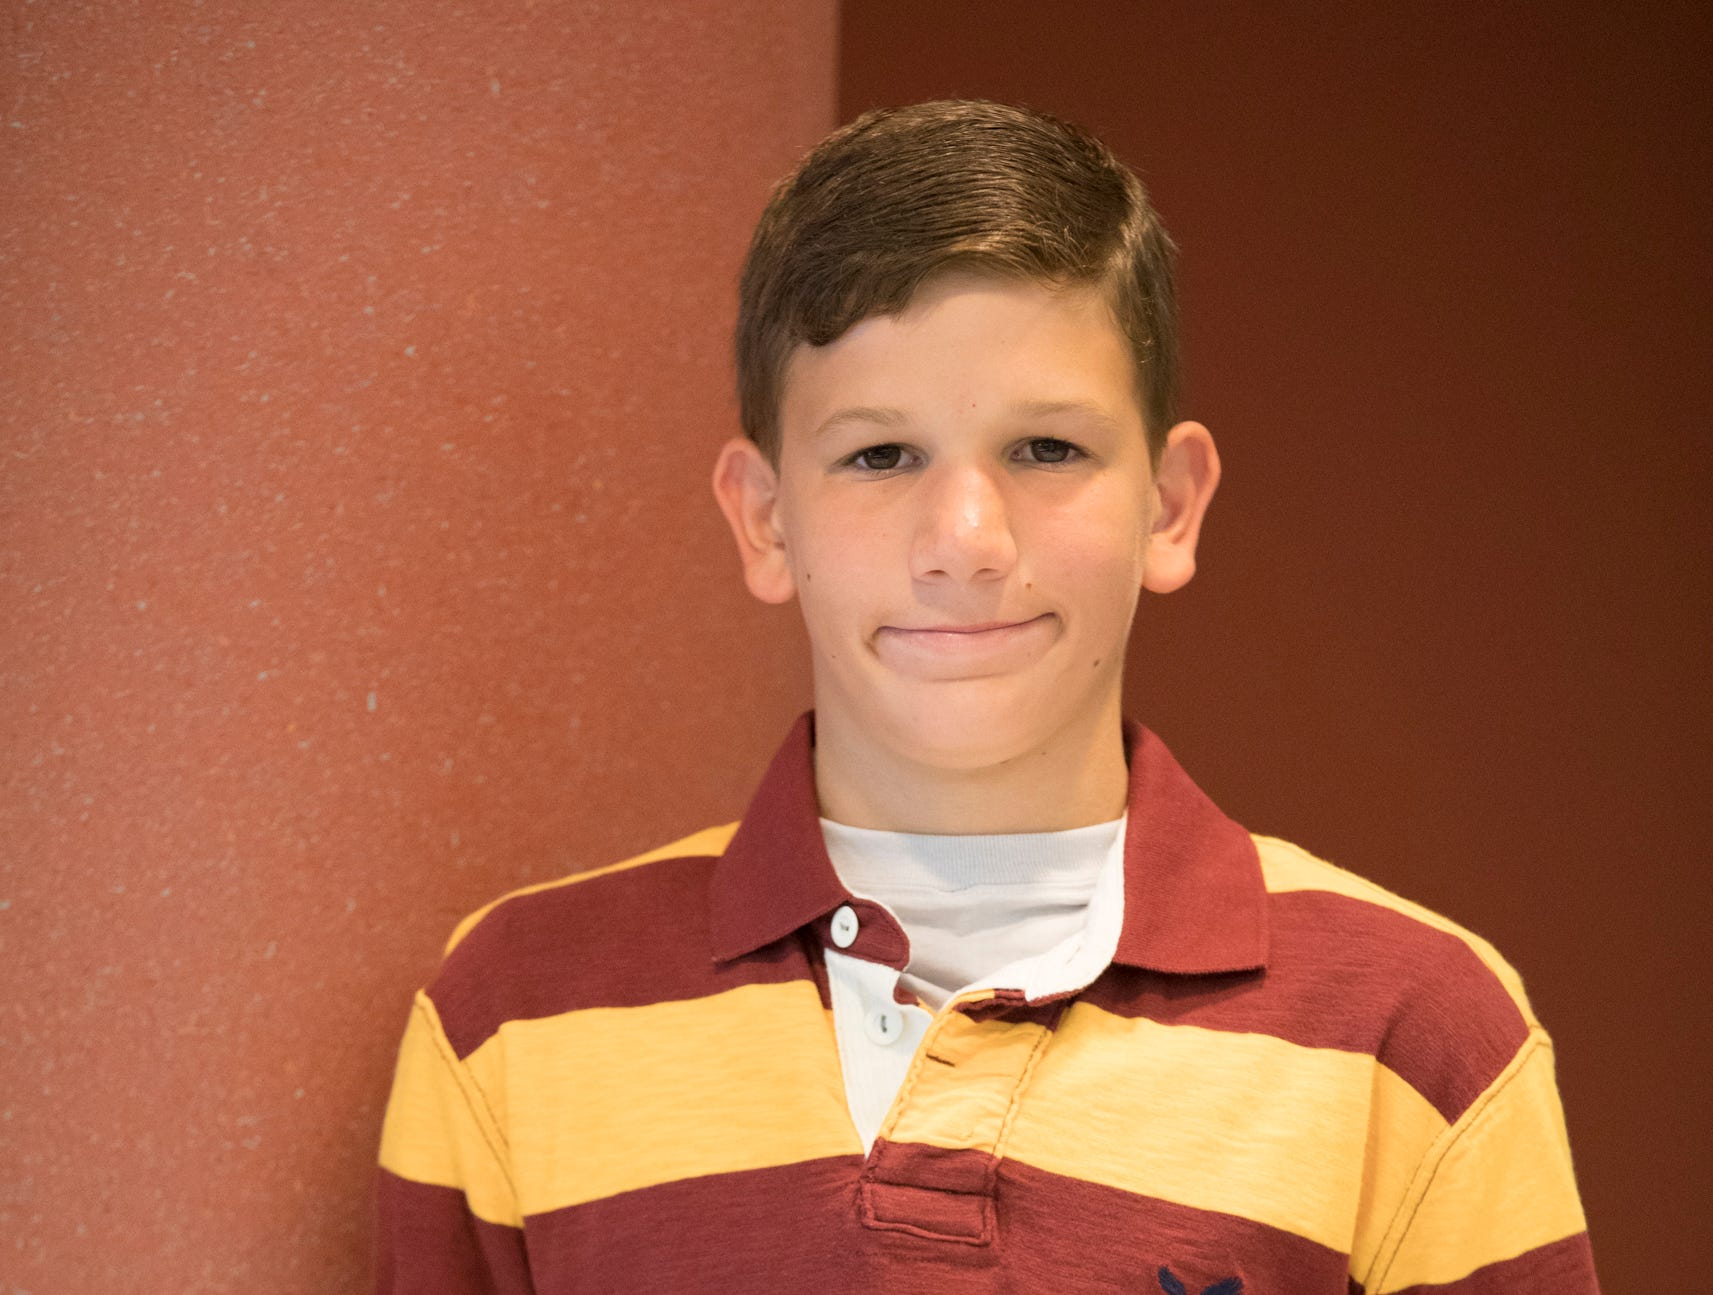 Zach Naumovski, 13, Clover Bees. Project: Let's Bake Quick Breads